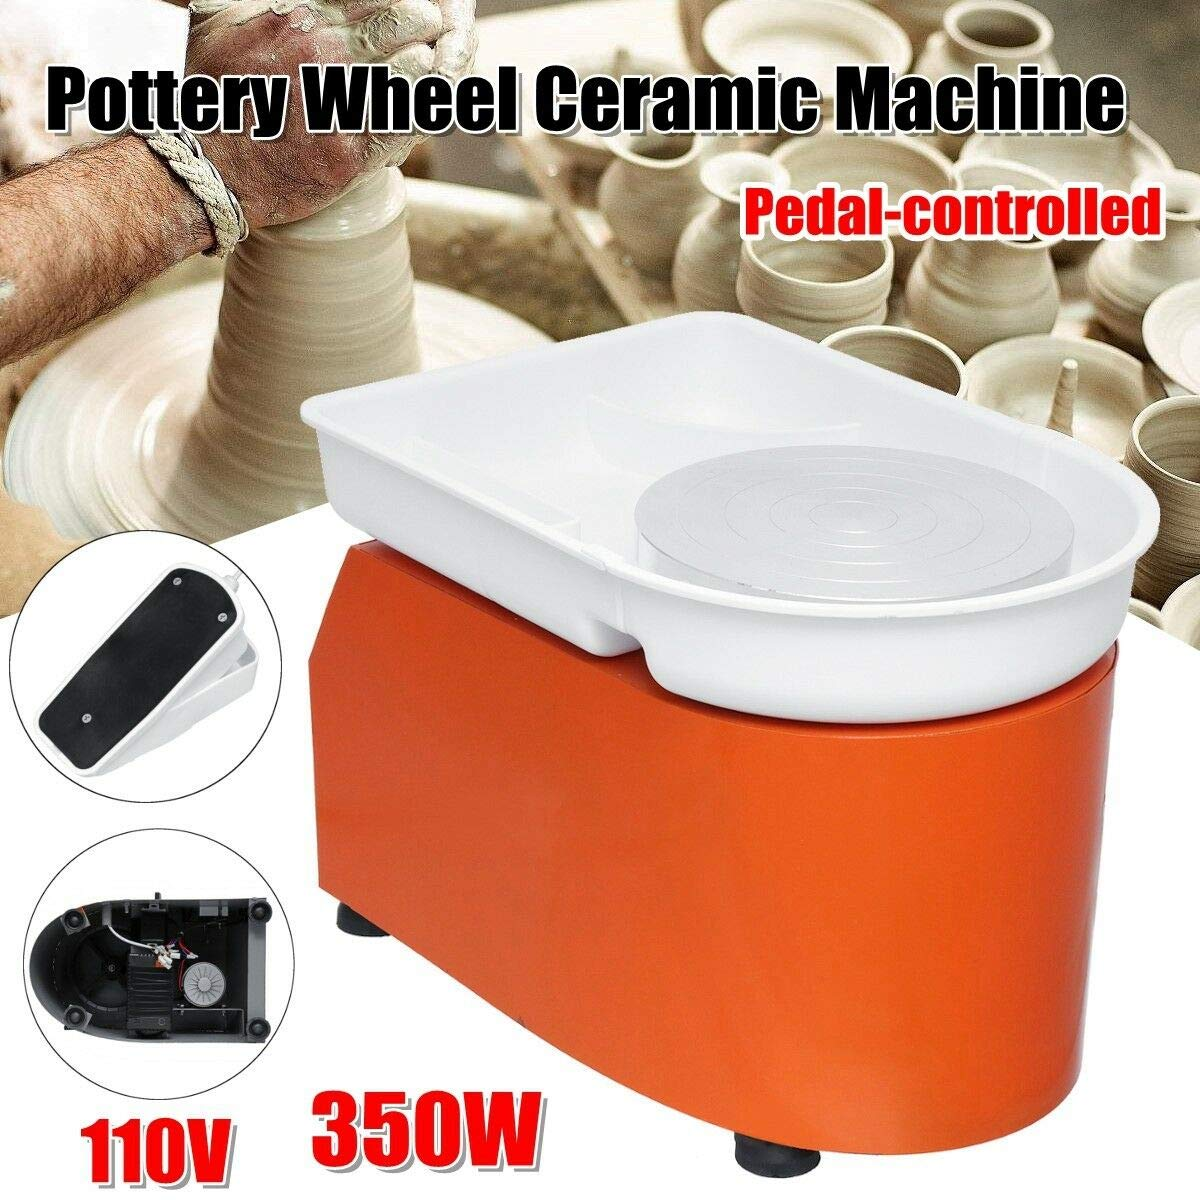 Barbella Pottery Wheel Pottery Forming Machine 250W Electric Pottery Wheel DIY Clay Tool with Tray for Ceramic Work Ceramics Clay (Orange) by Barbella (Image #4)